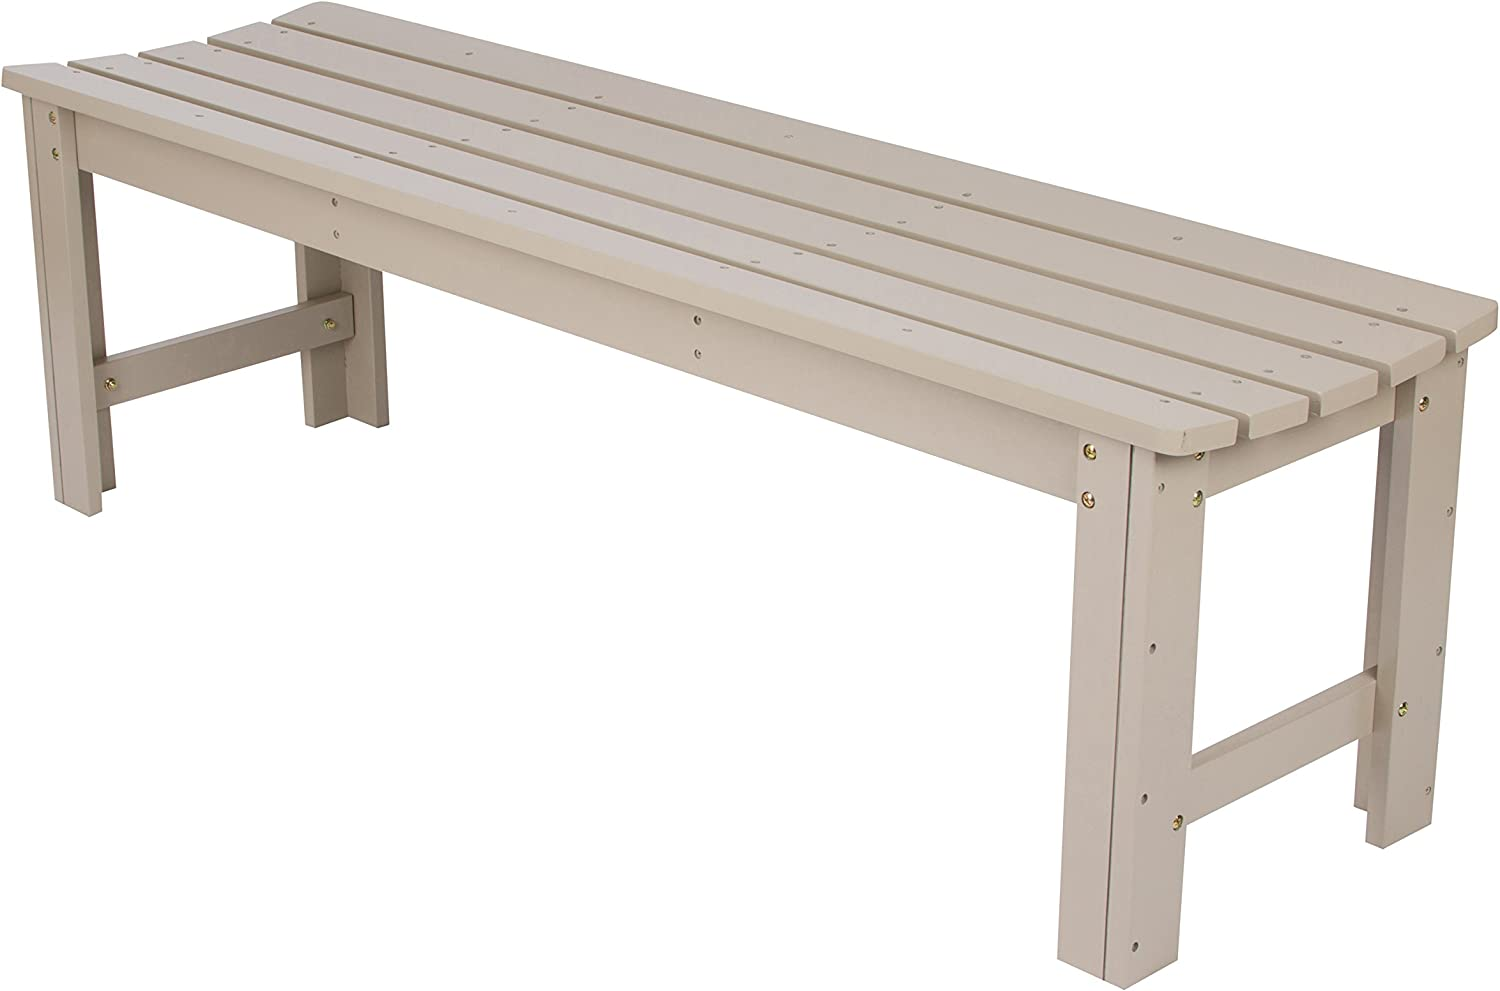 Shine Company 4205TG Backless Garden Bench, 5 Ft, Taupe Gray